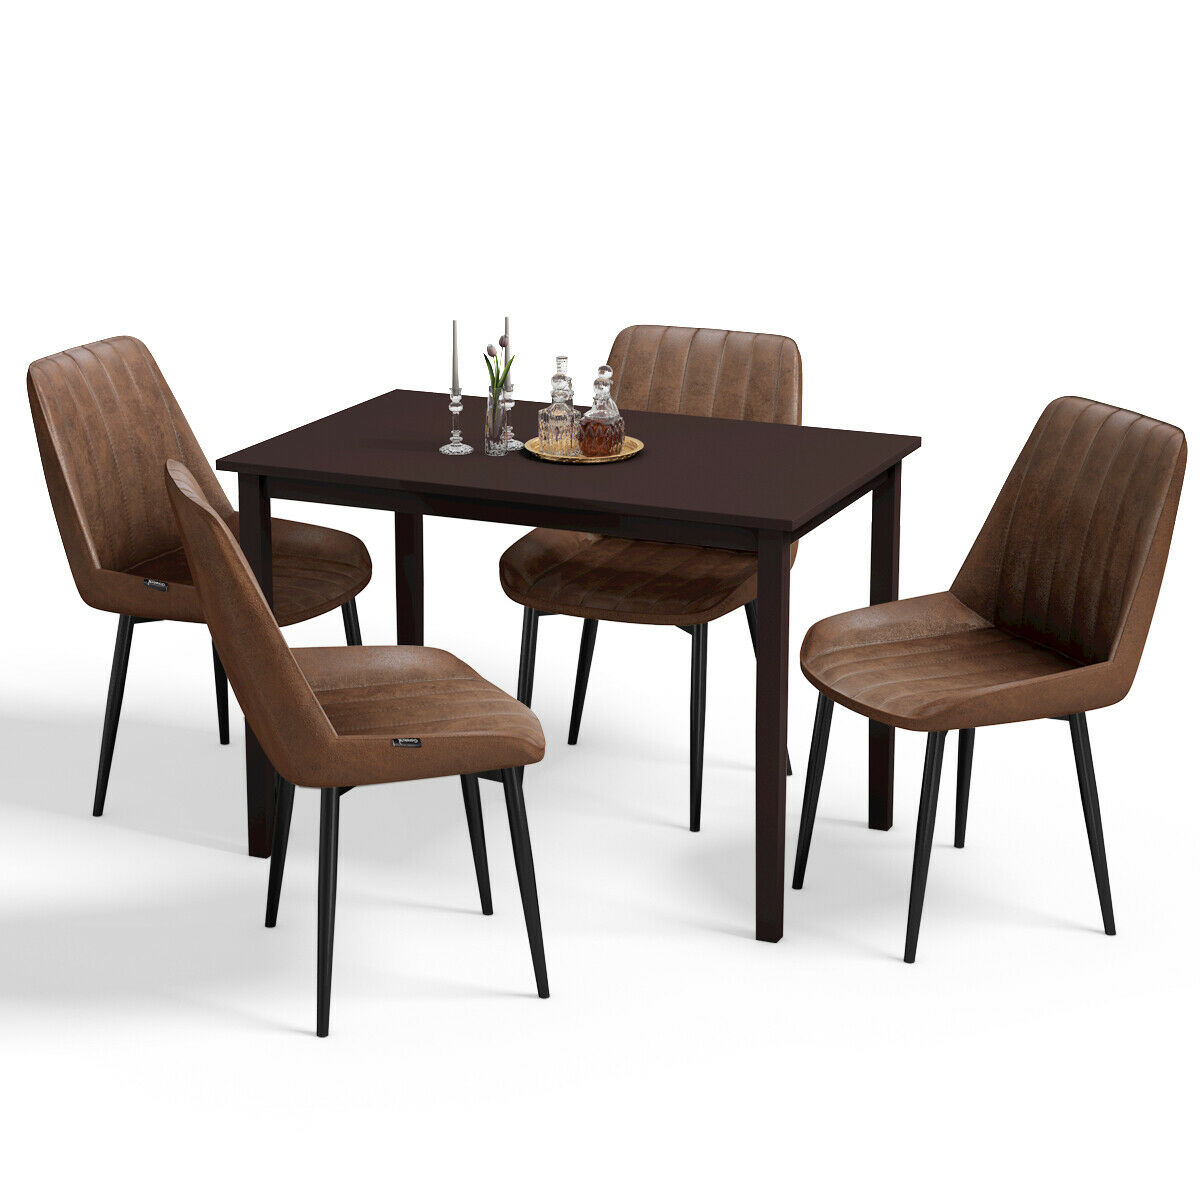 Gymax 5 Piece Dining Set Table and 4 Padded Seat Chairs ...